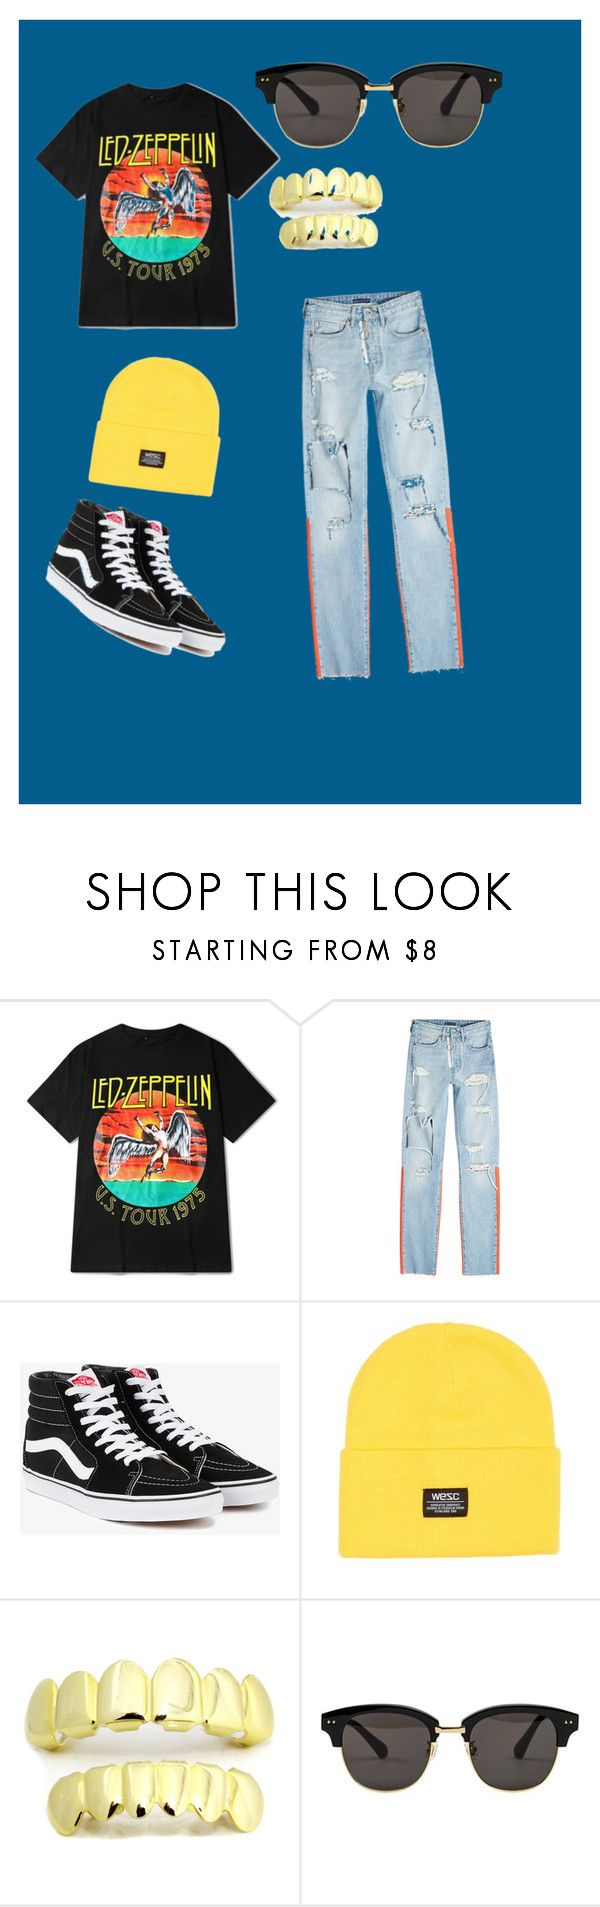 """Untitled #27"" by dajahp ❤ liked on Polyvore featuring Off-White, Vans, WeSC, Gentle Monster, men's fashion and menswear"